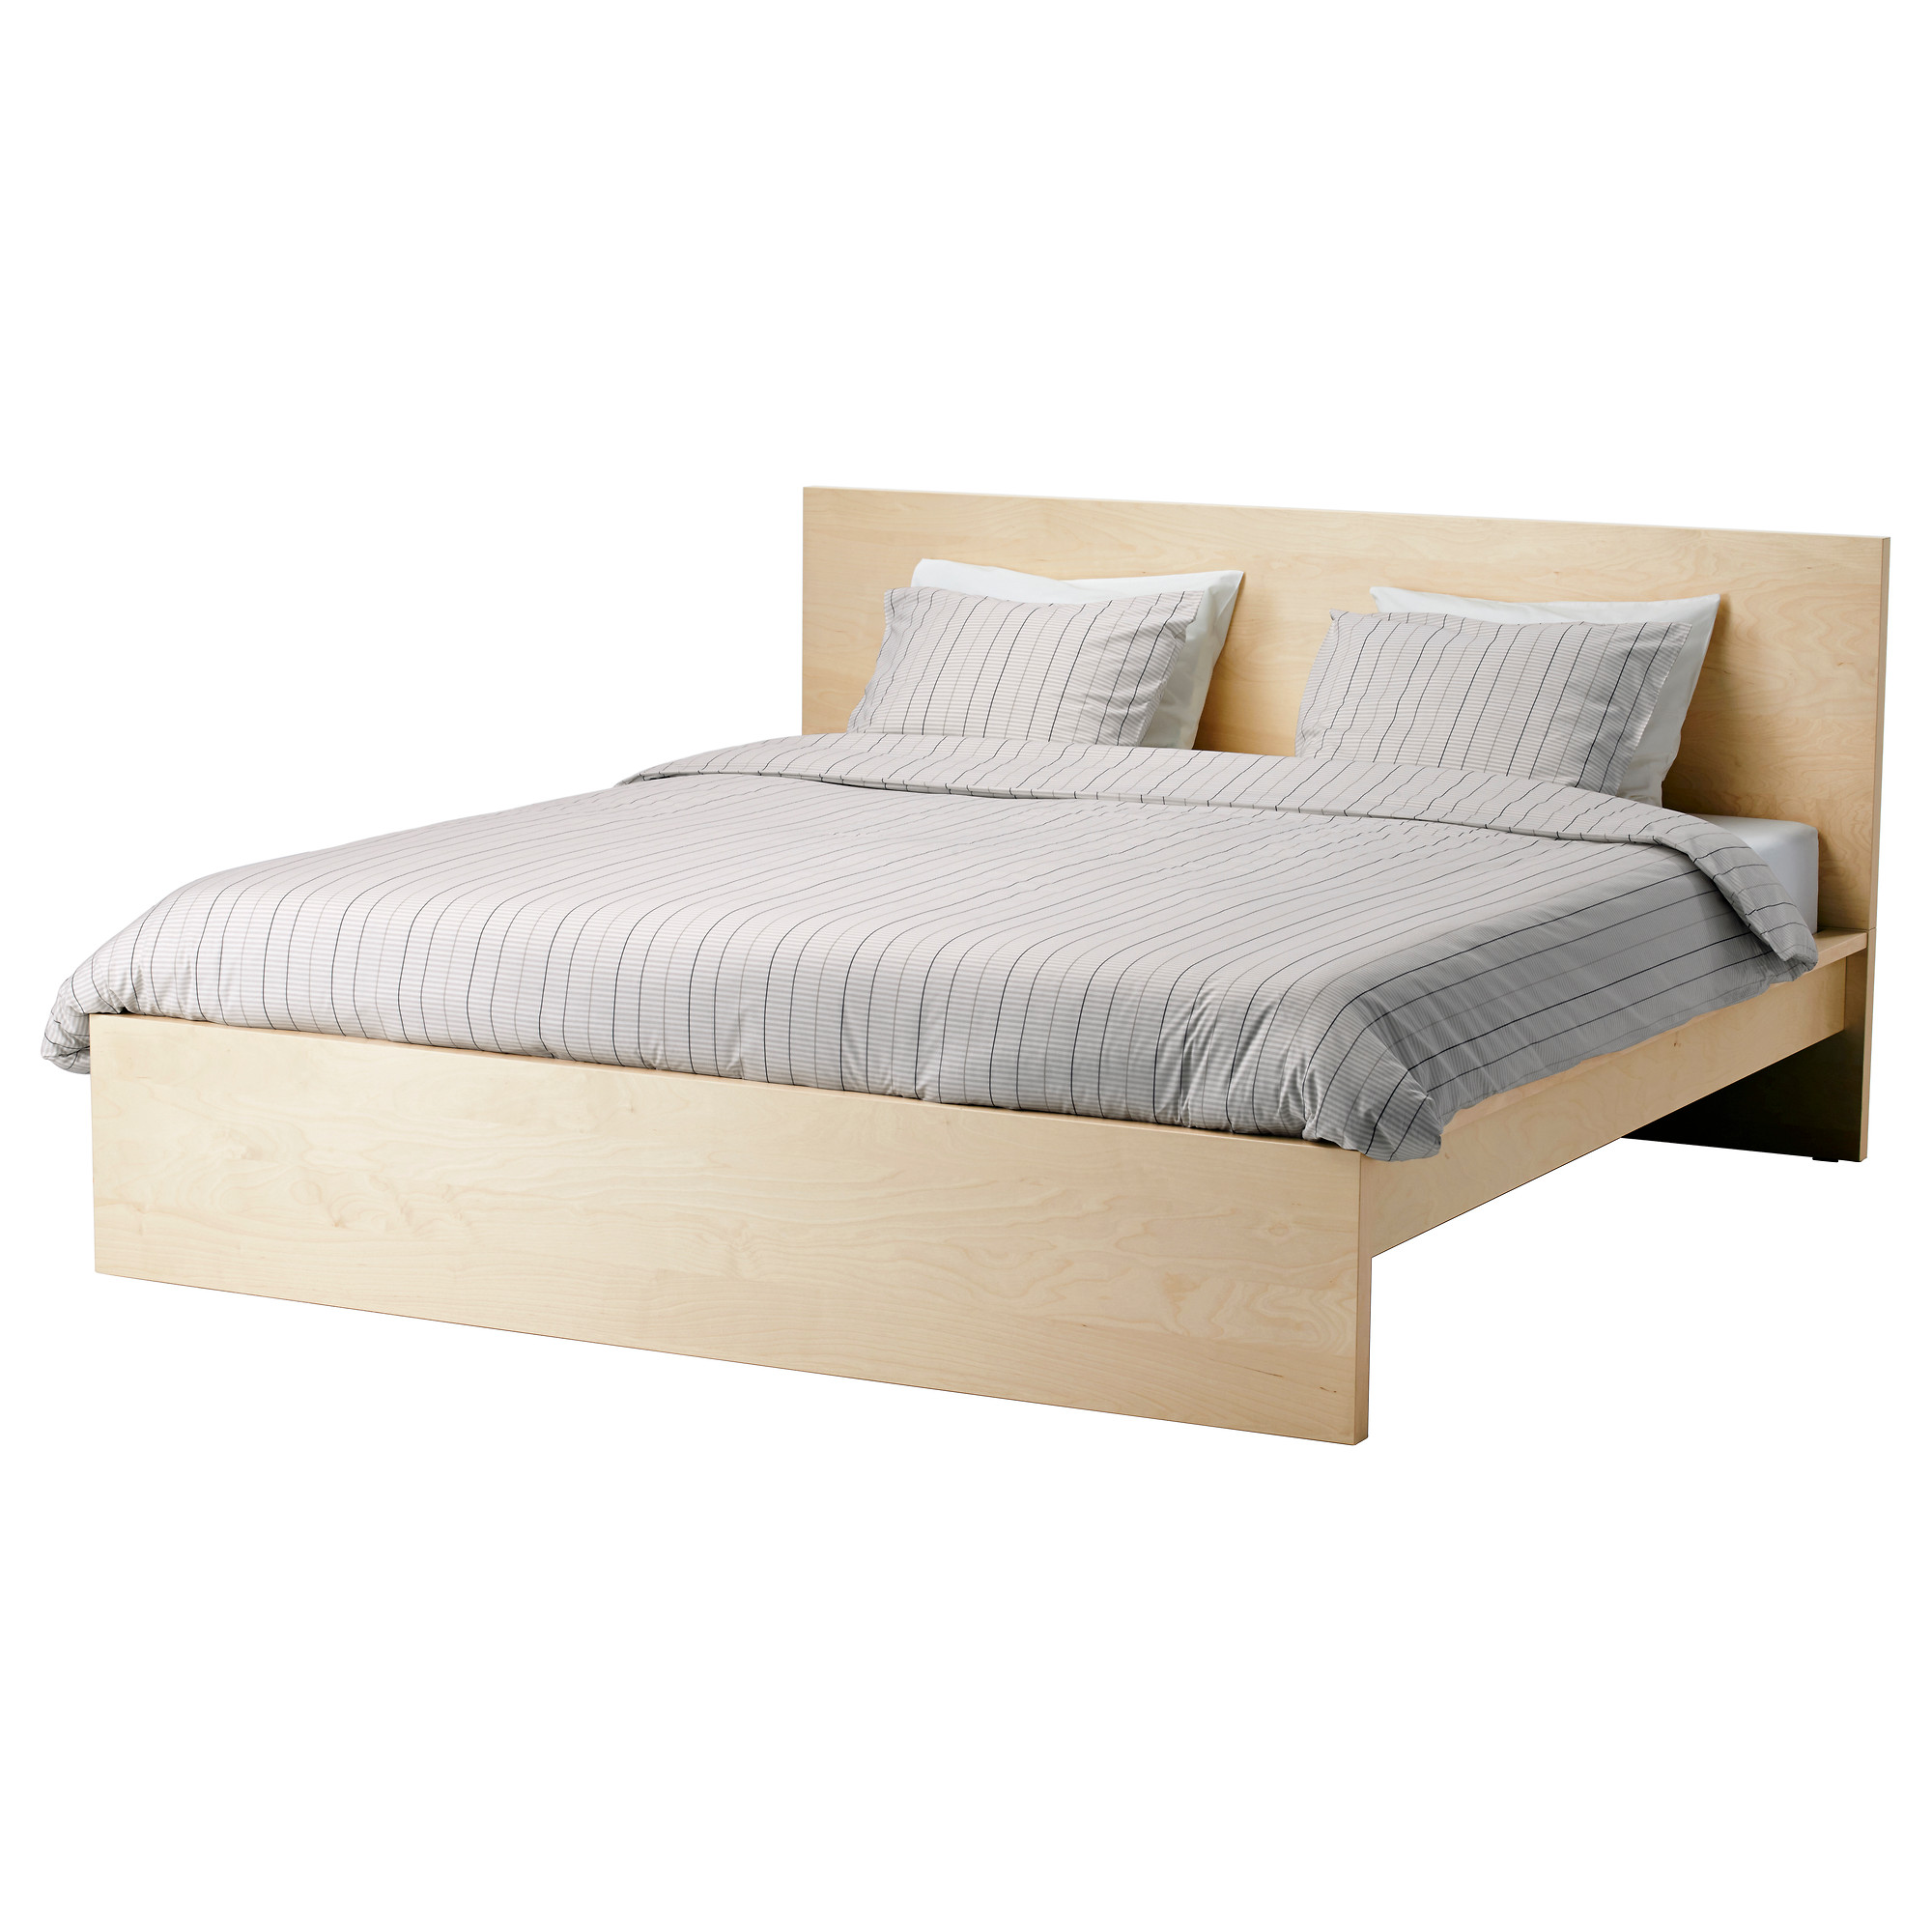 Simple Bed Platform Awesome Ikea King Platform Bed Homesfeed